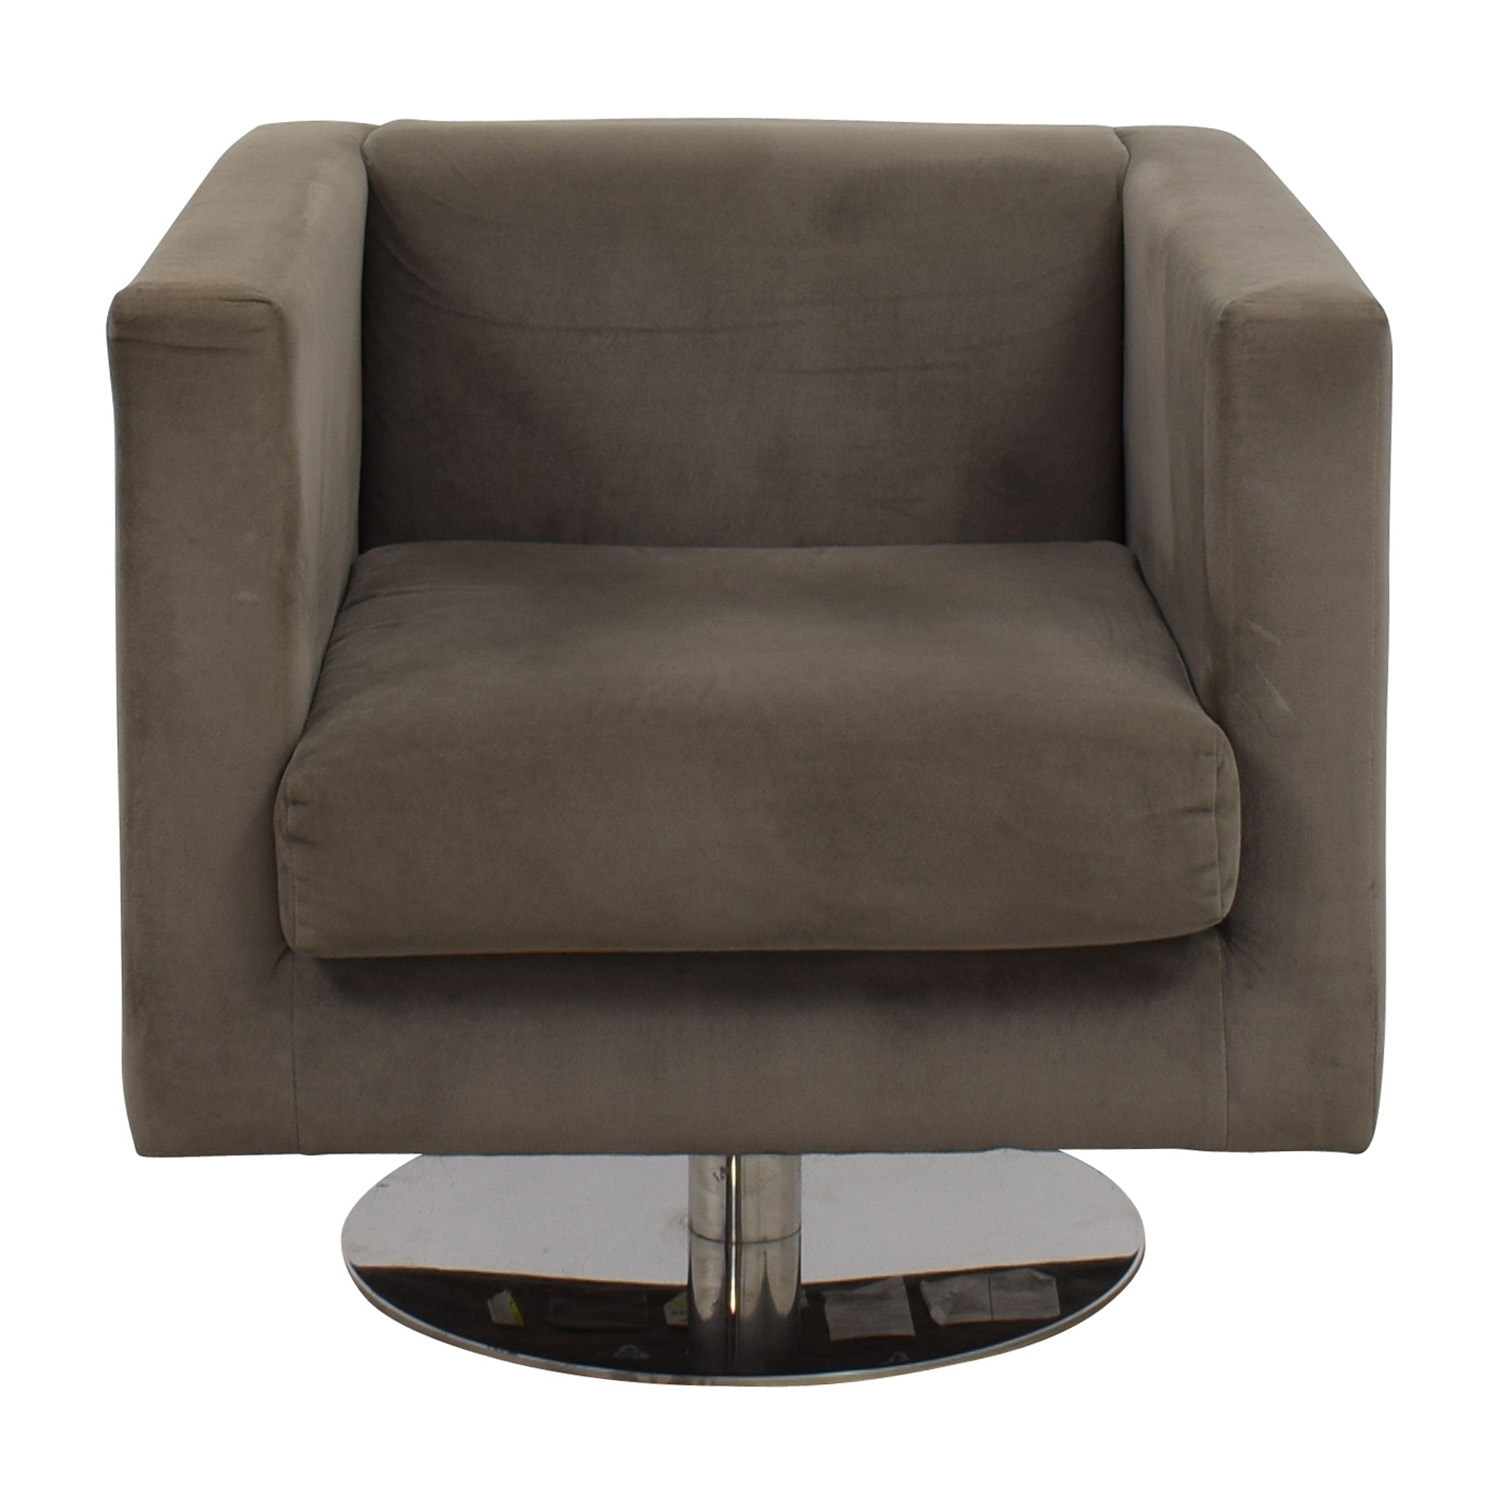 Rowe Rowe Grey Swivel Chair price